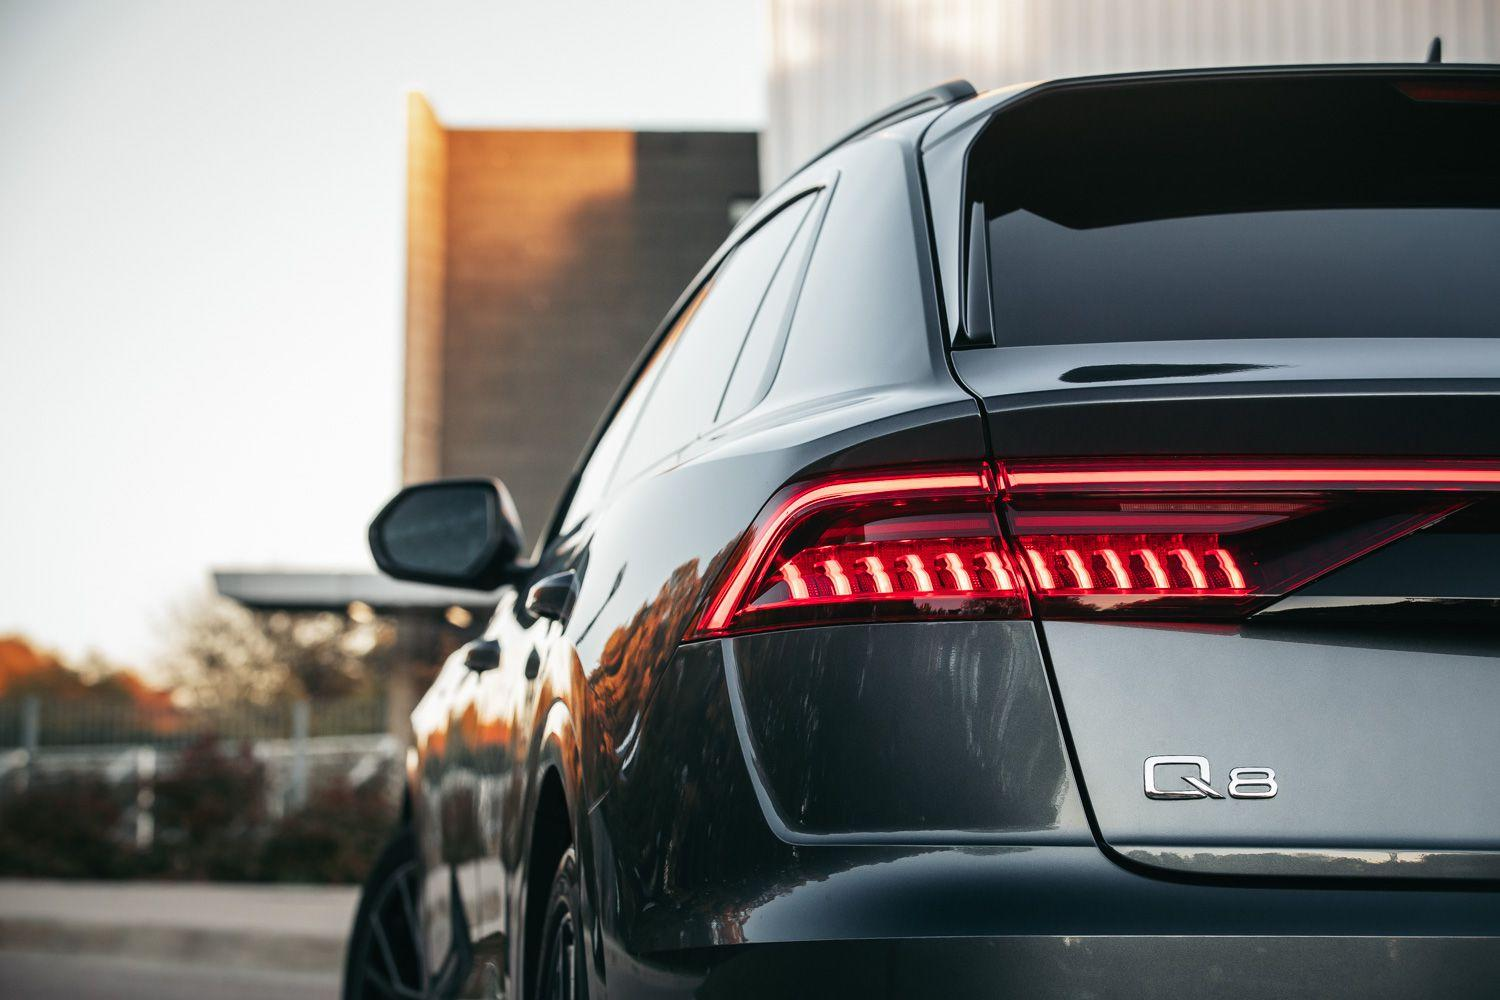 Detailed Photos of the 2019 Audi Q8 Luxury SUV